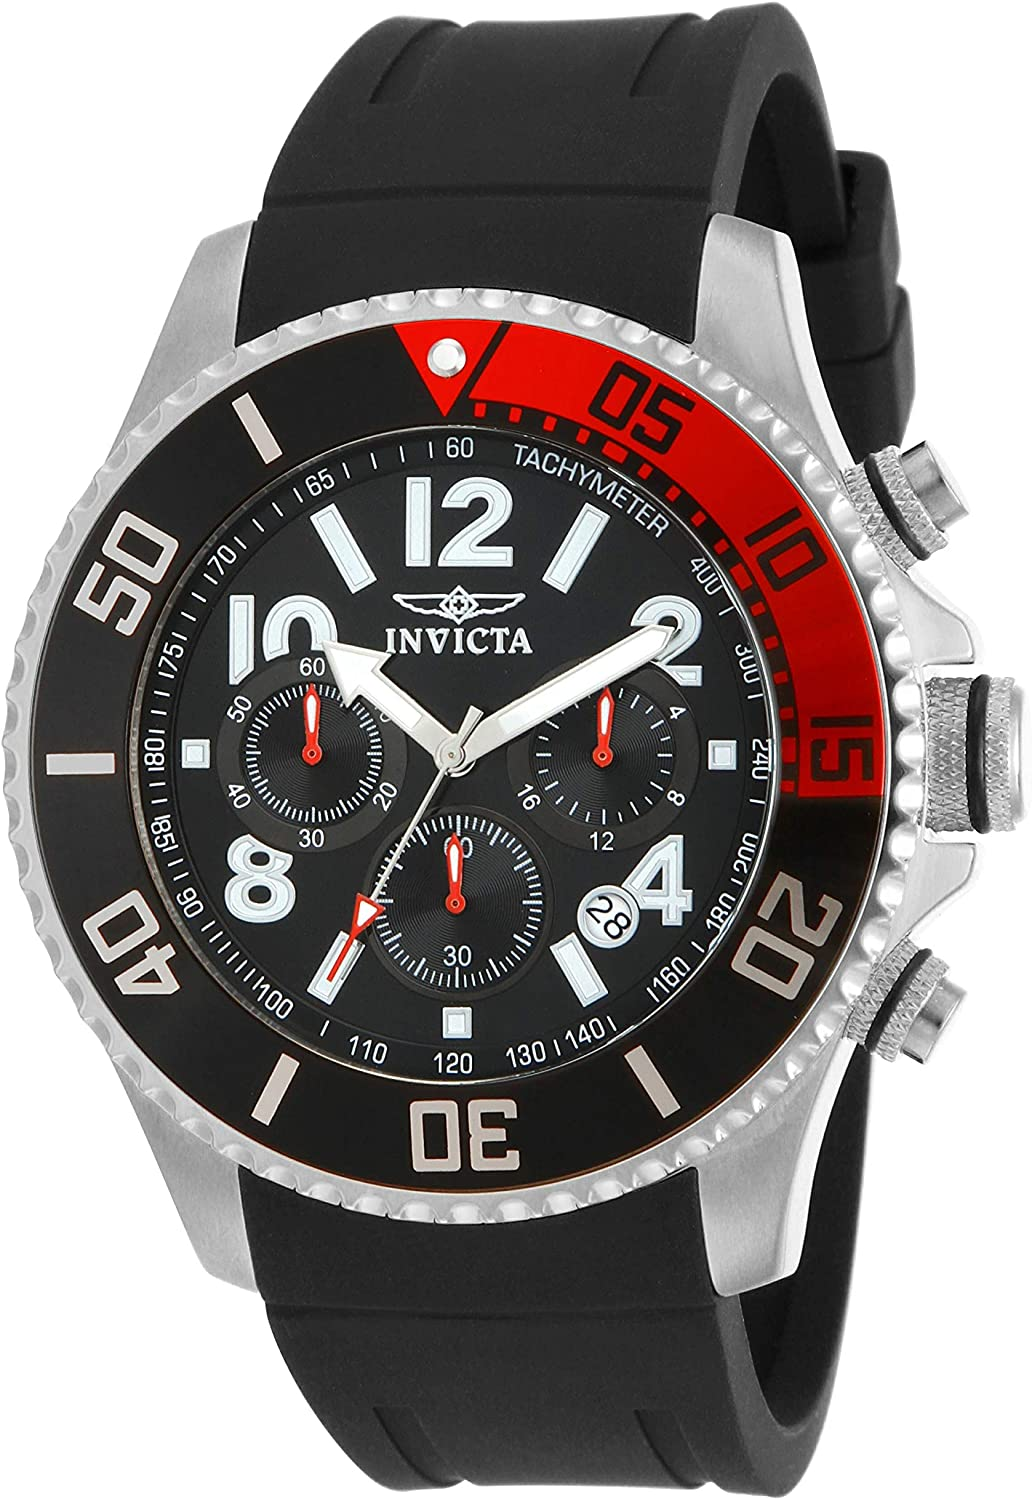 Invicta Men s 15145 Pro Diver Stainless Steel Watch With Black Polyurethane Band